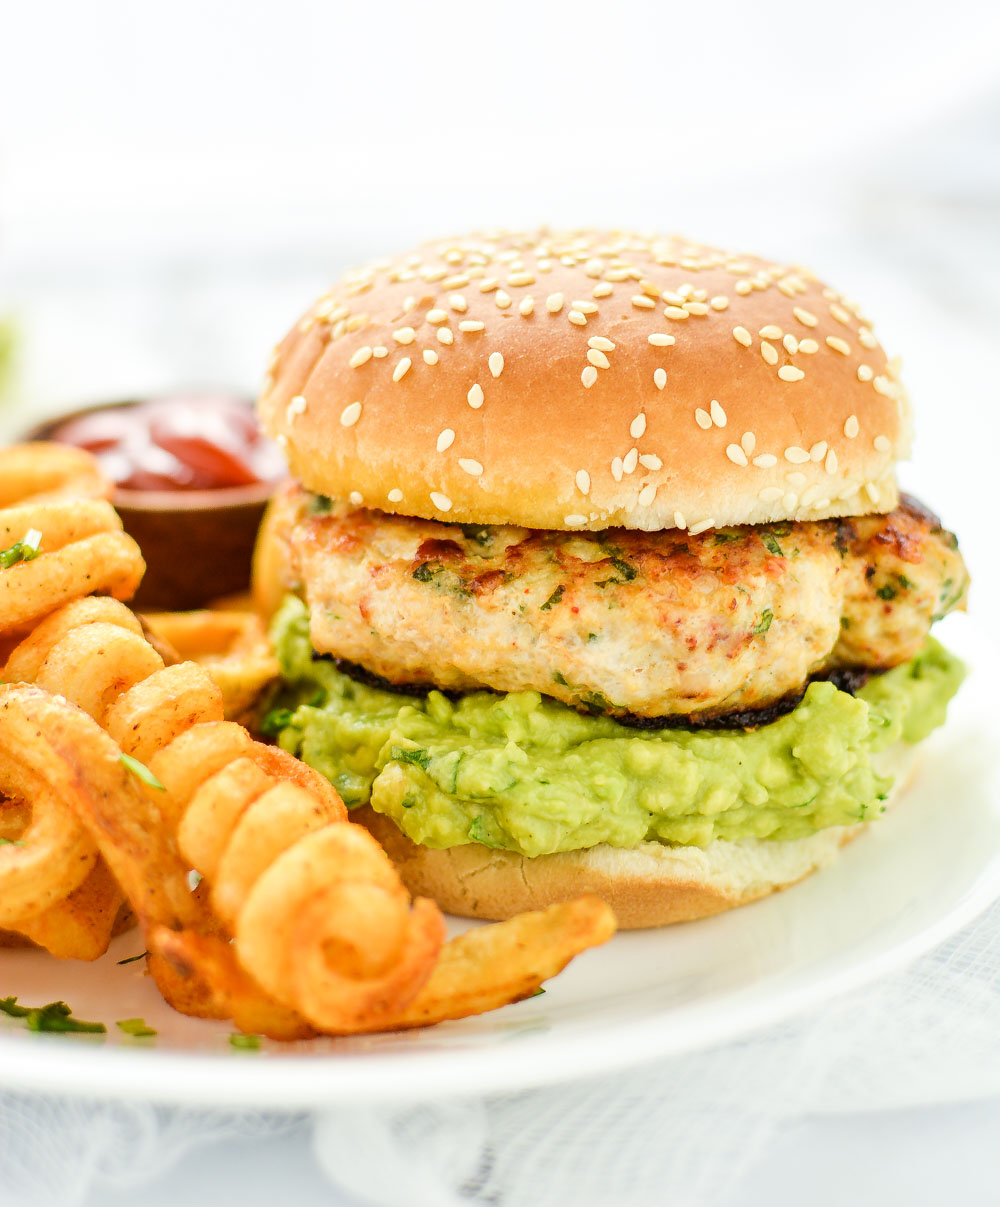 Grilled Chicken Burgers With Guacamolecooking And Beer